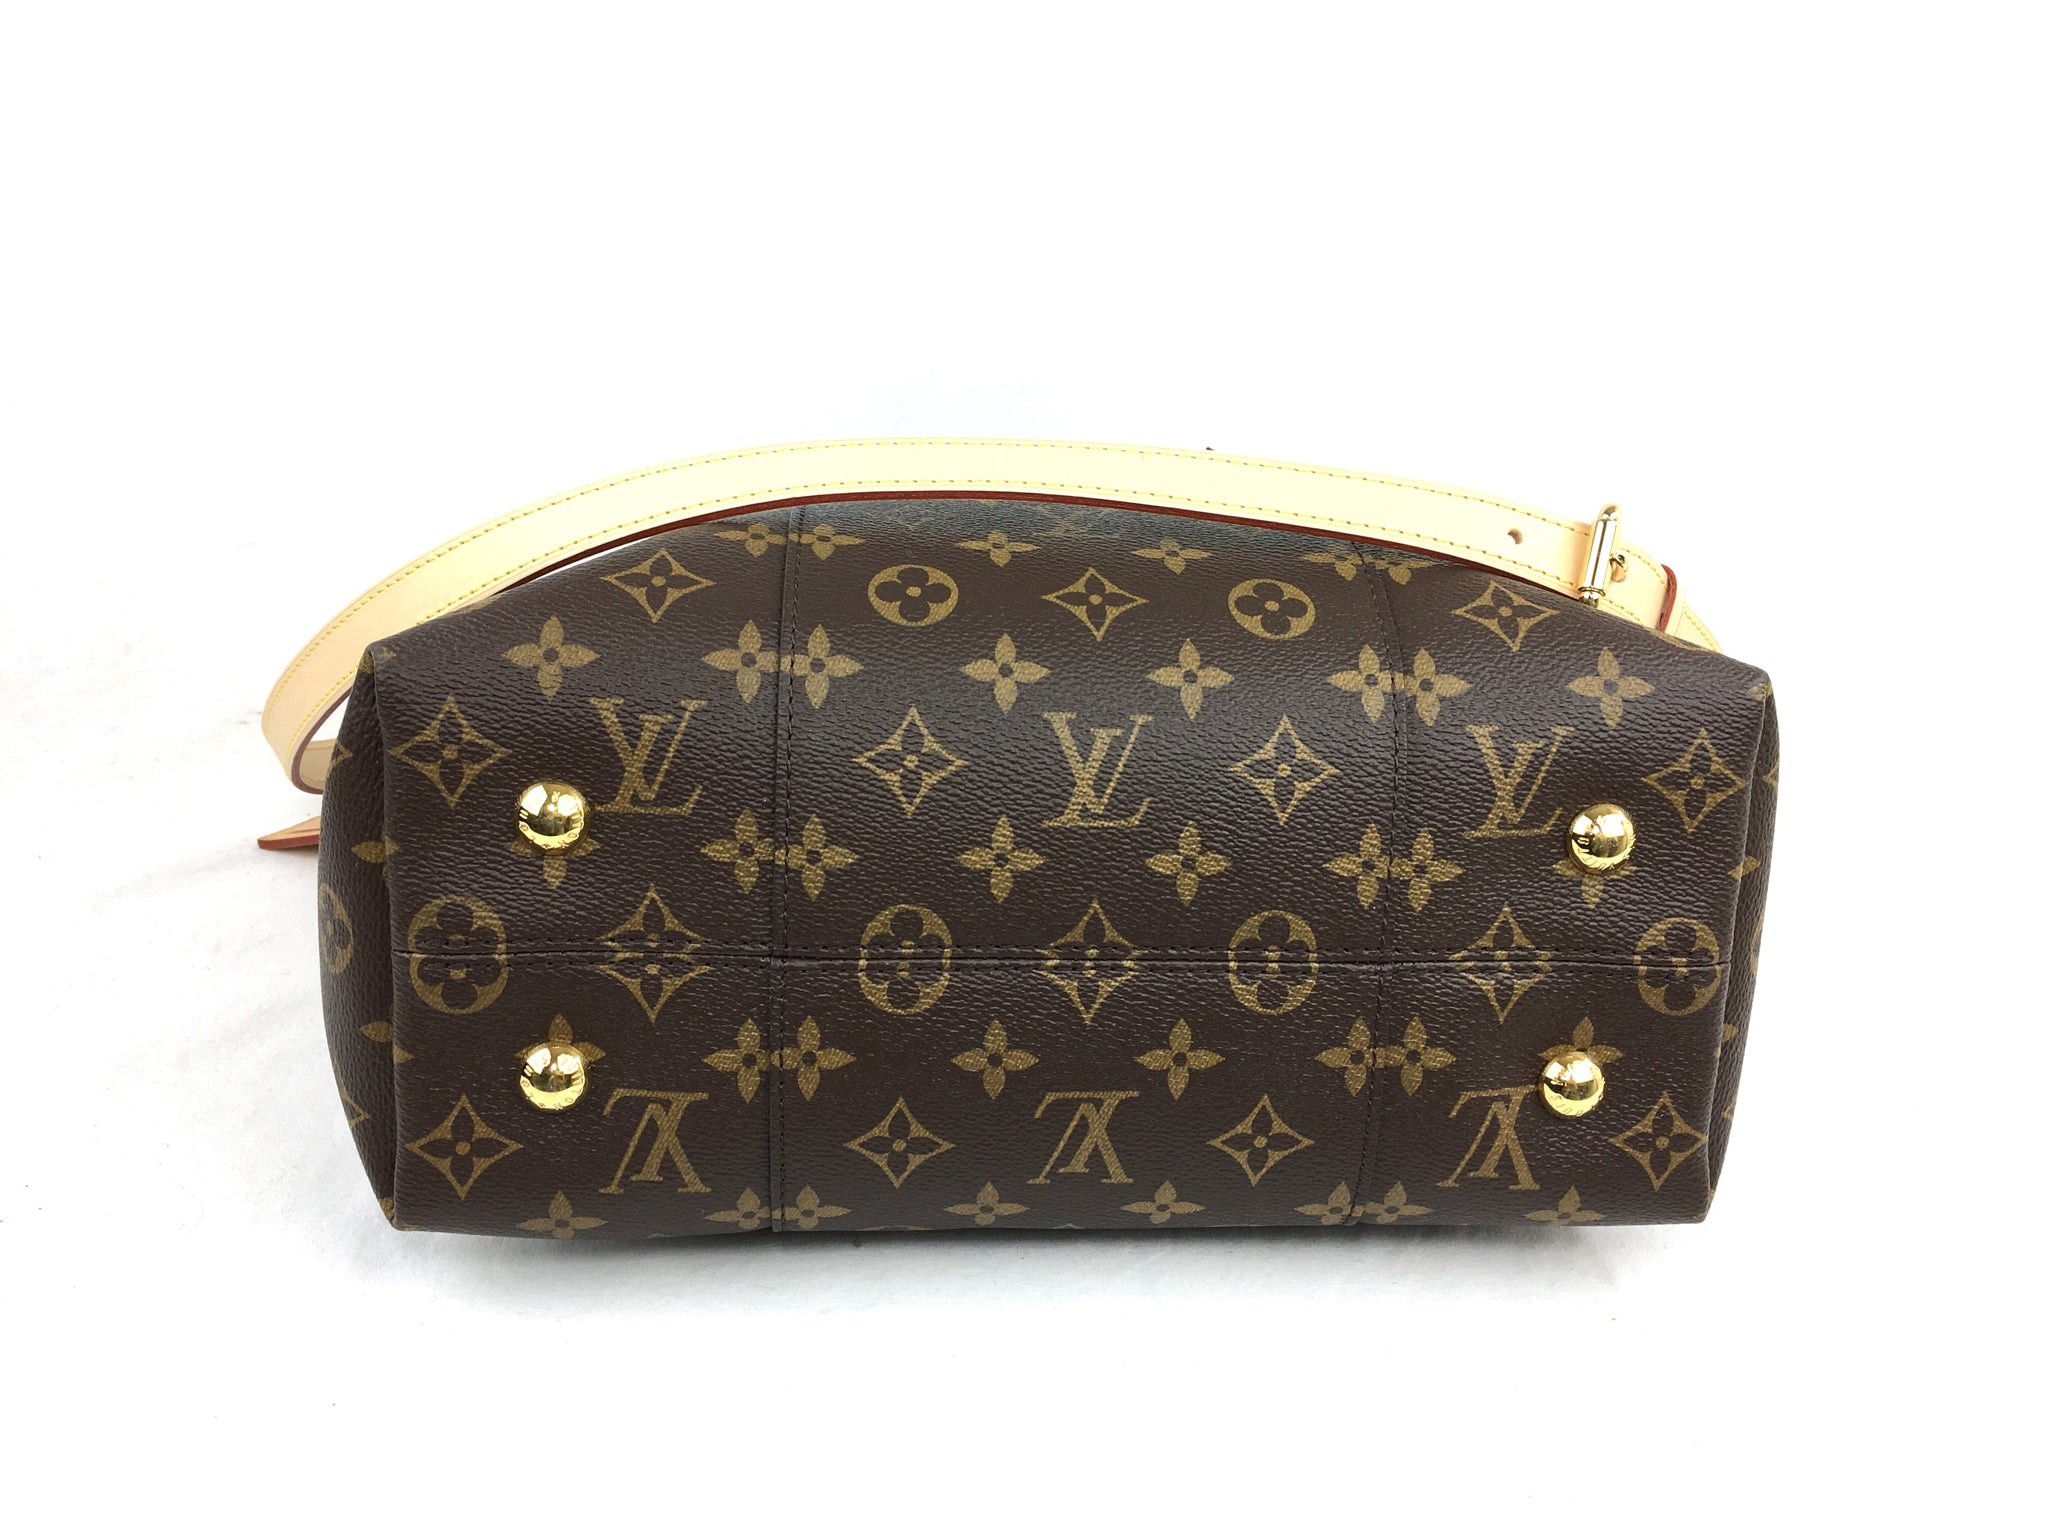 LOUIS VUITTON Monogram MÉLIE Shoulder Bag